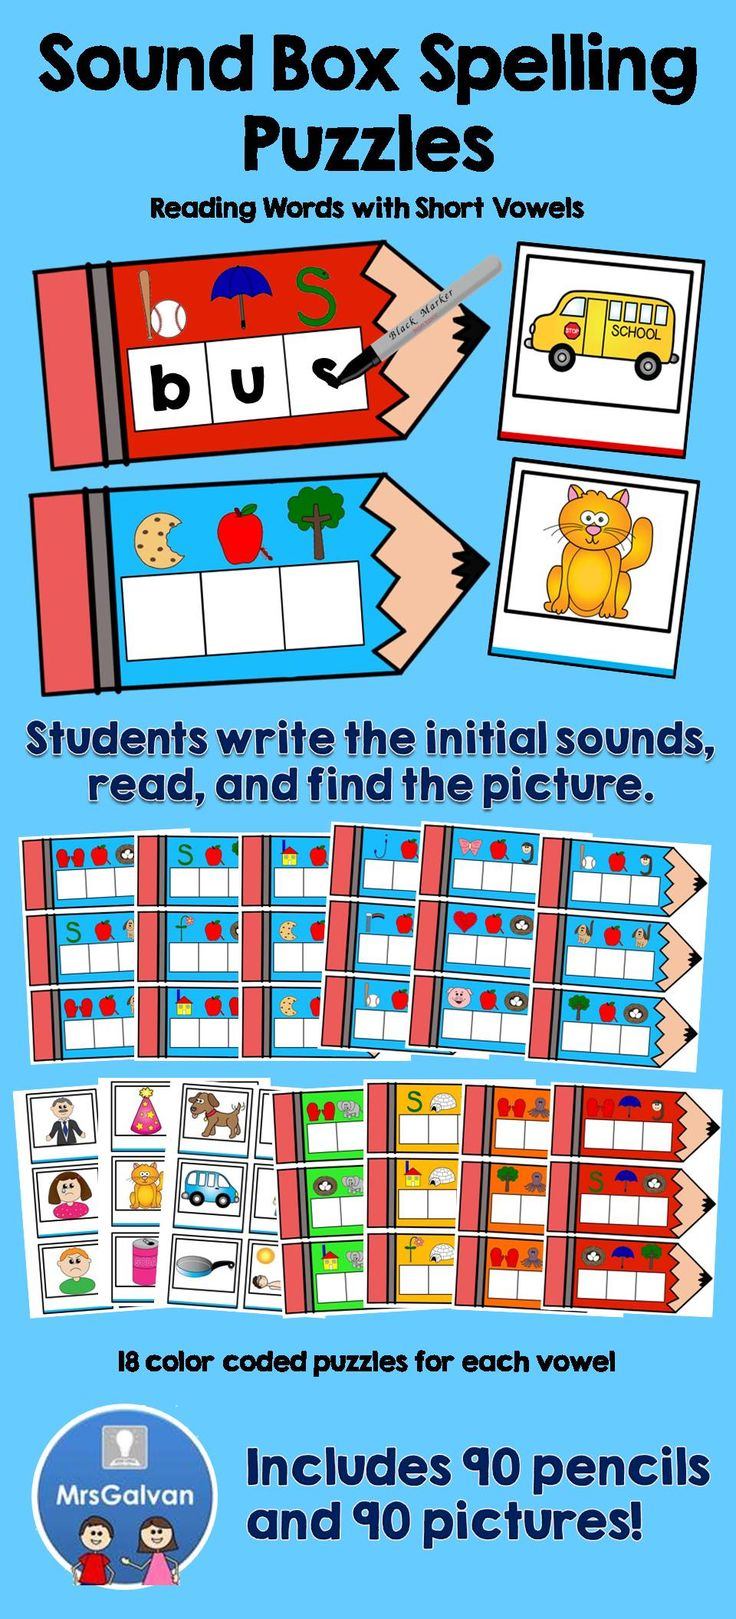 Worksheet How To Learn Spellings Quickly 1000 images about centers on pinterest math subitizing and the sound box spelling puzzles are a hands way for children to learn how read spell they can quickly become new literacy